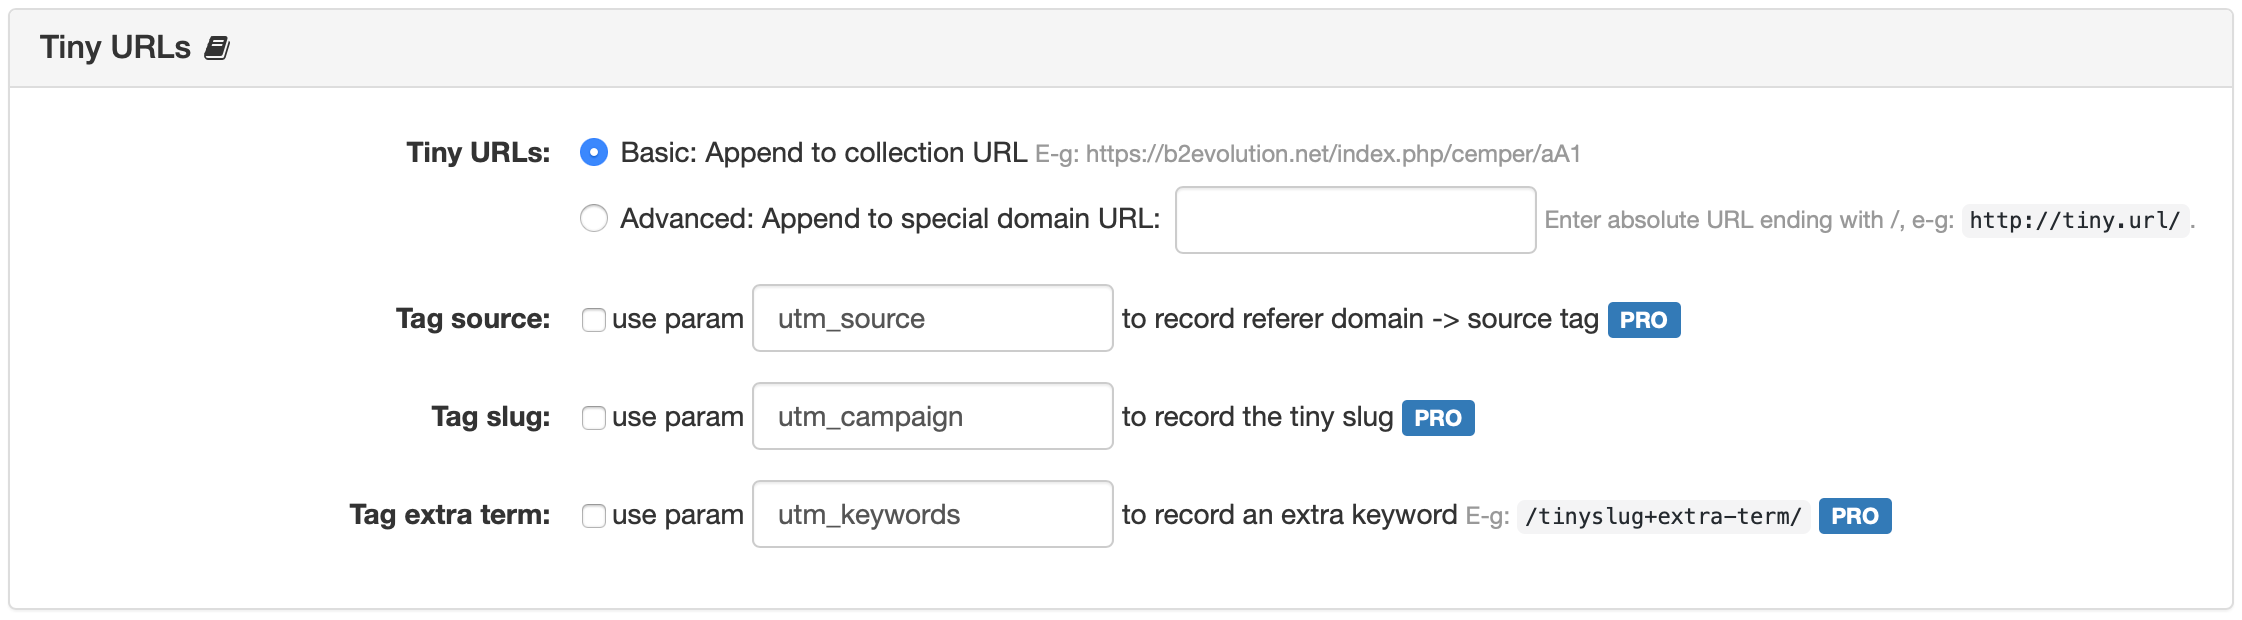 Collection Tiny URLs Settings